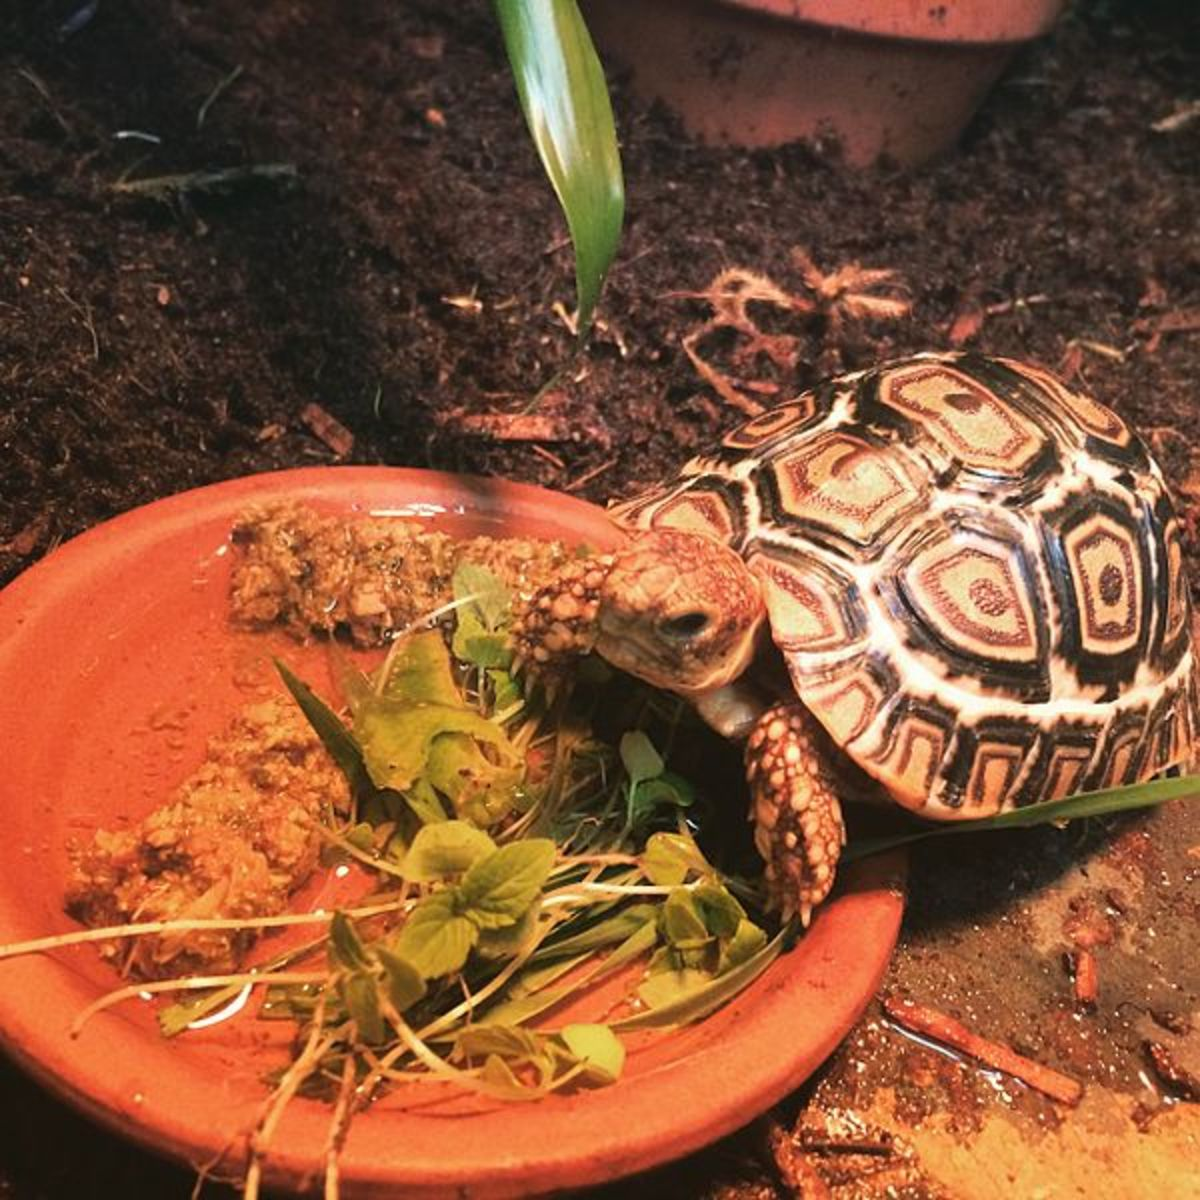 A tortoise needs a natural diet but can also be fed high-quality commercial pellets designed for tortoises.